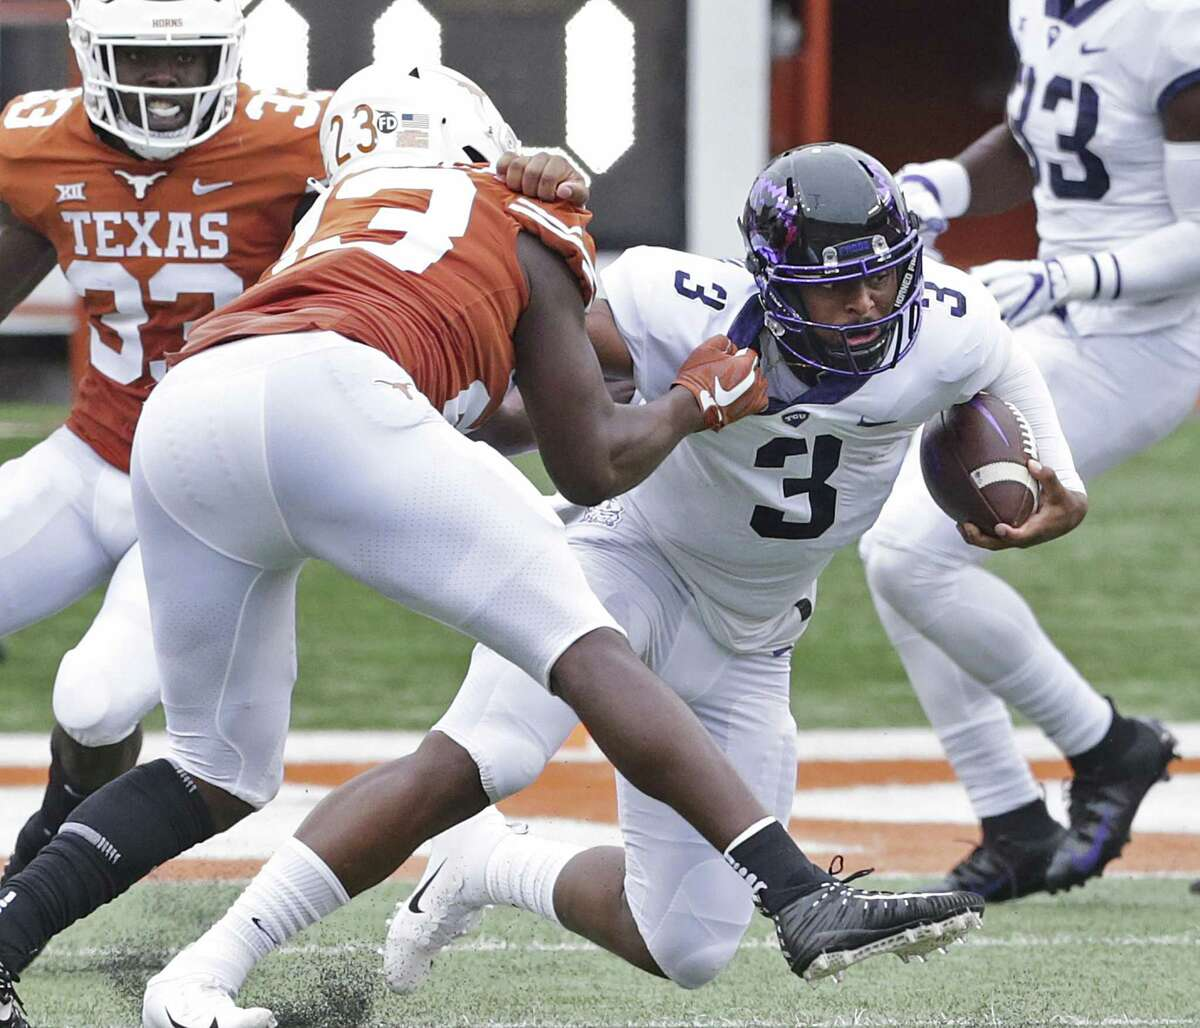 Frog quarterback Shawn Robinson is slung down by Jeffrey McCulloch to stop a scoring threat as UT hosts TCU at DKR Stadium on September 22, 2018.